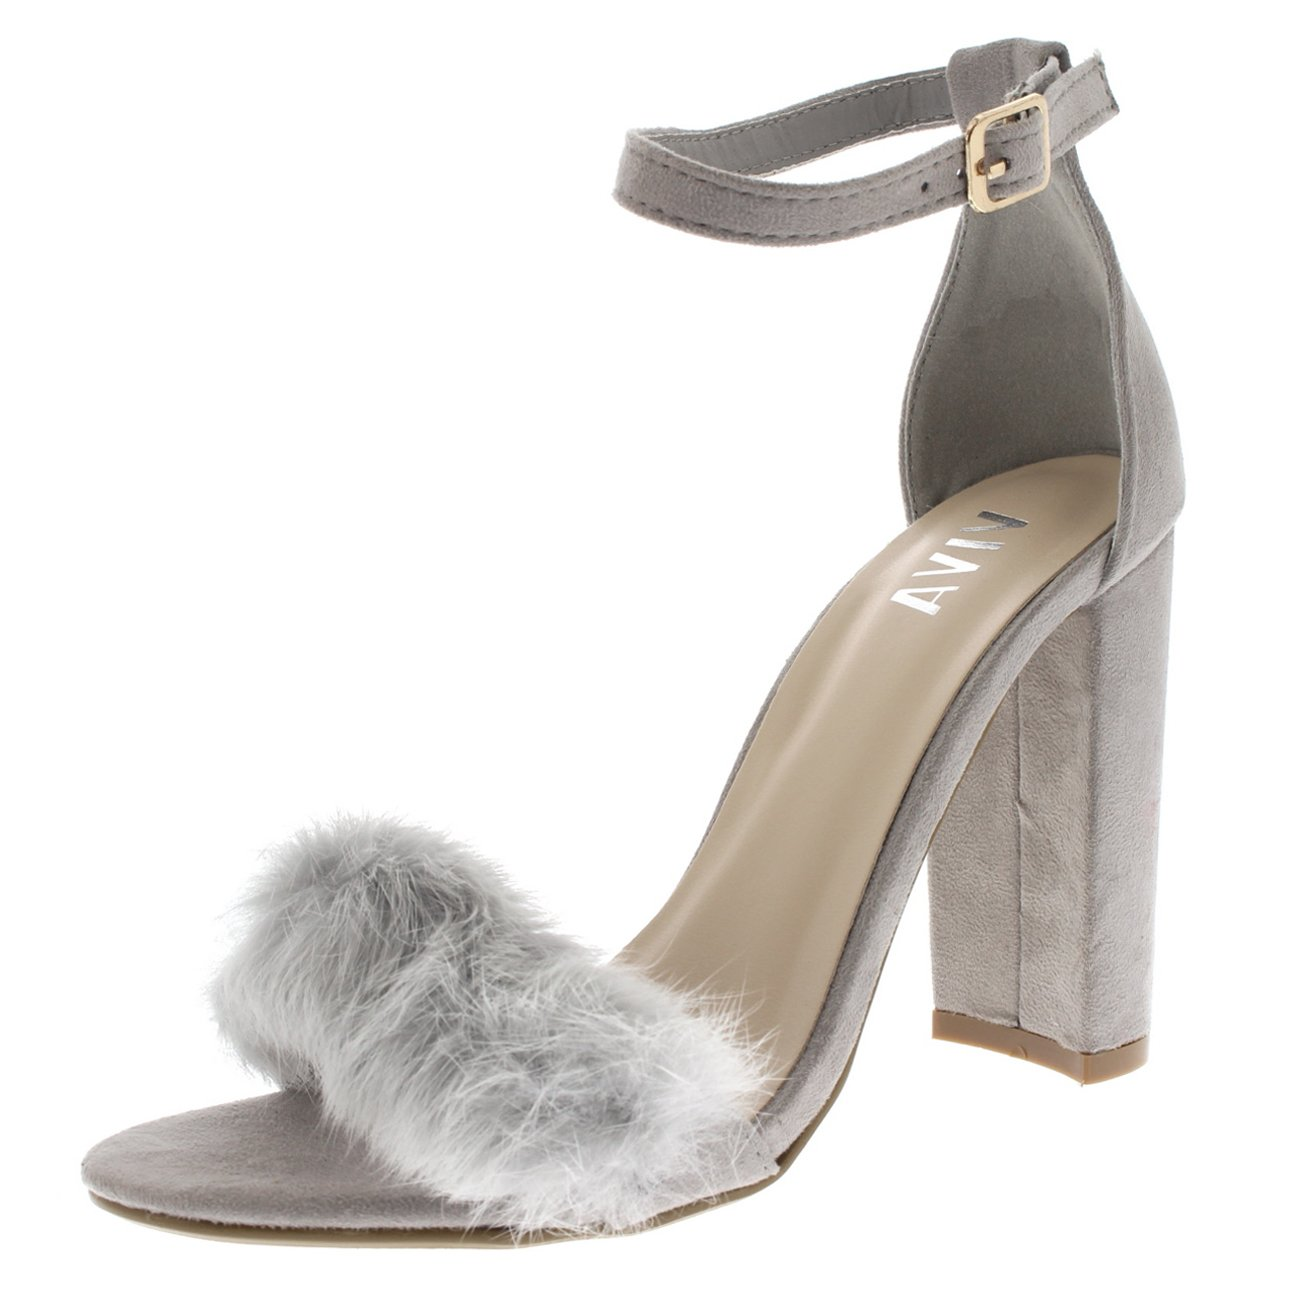 936e705b4777 Grey Women  Evening Block Heel Fashion Sandal Party Fluffy High Heels Size 5